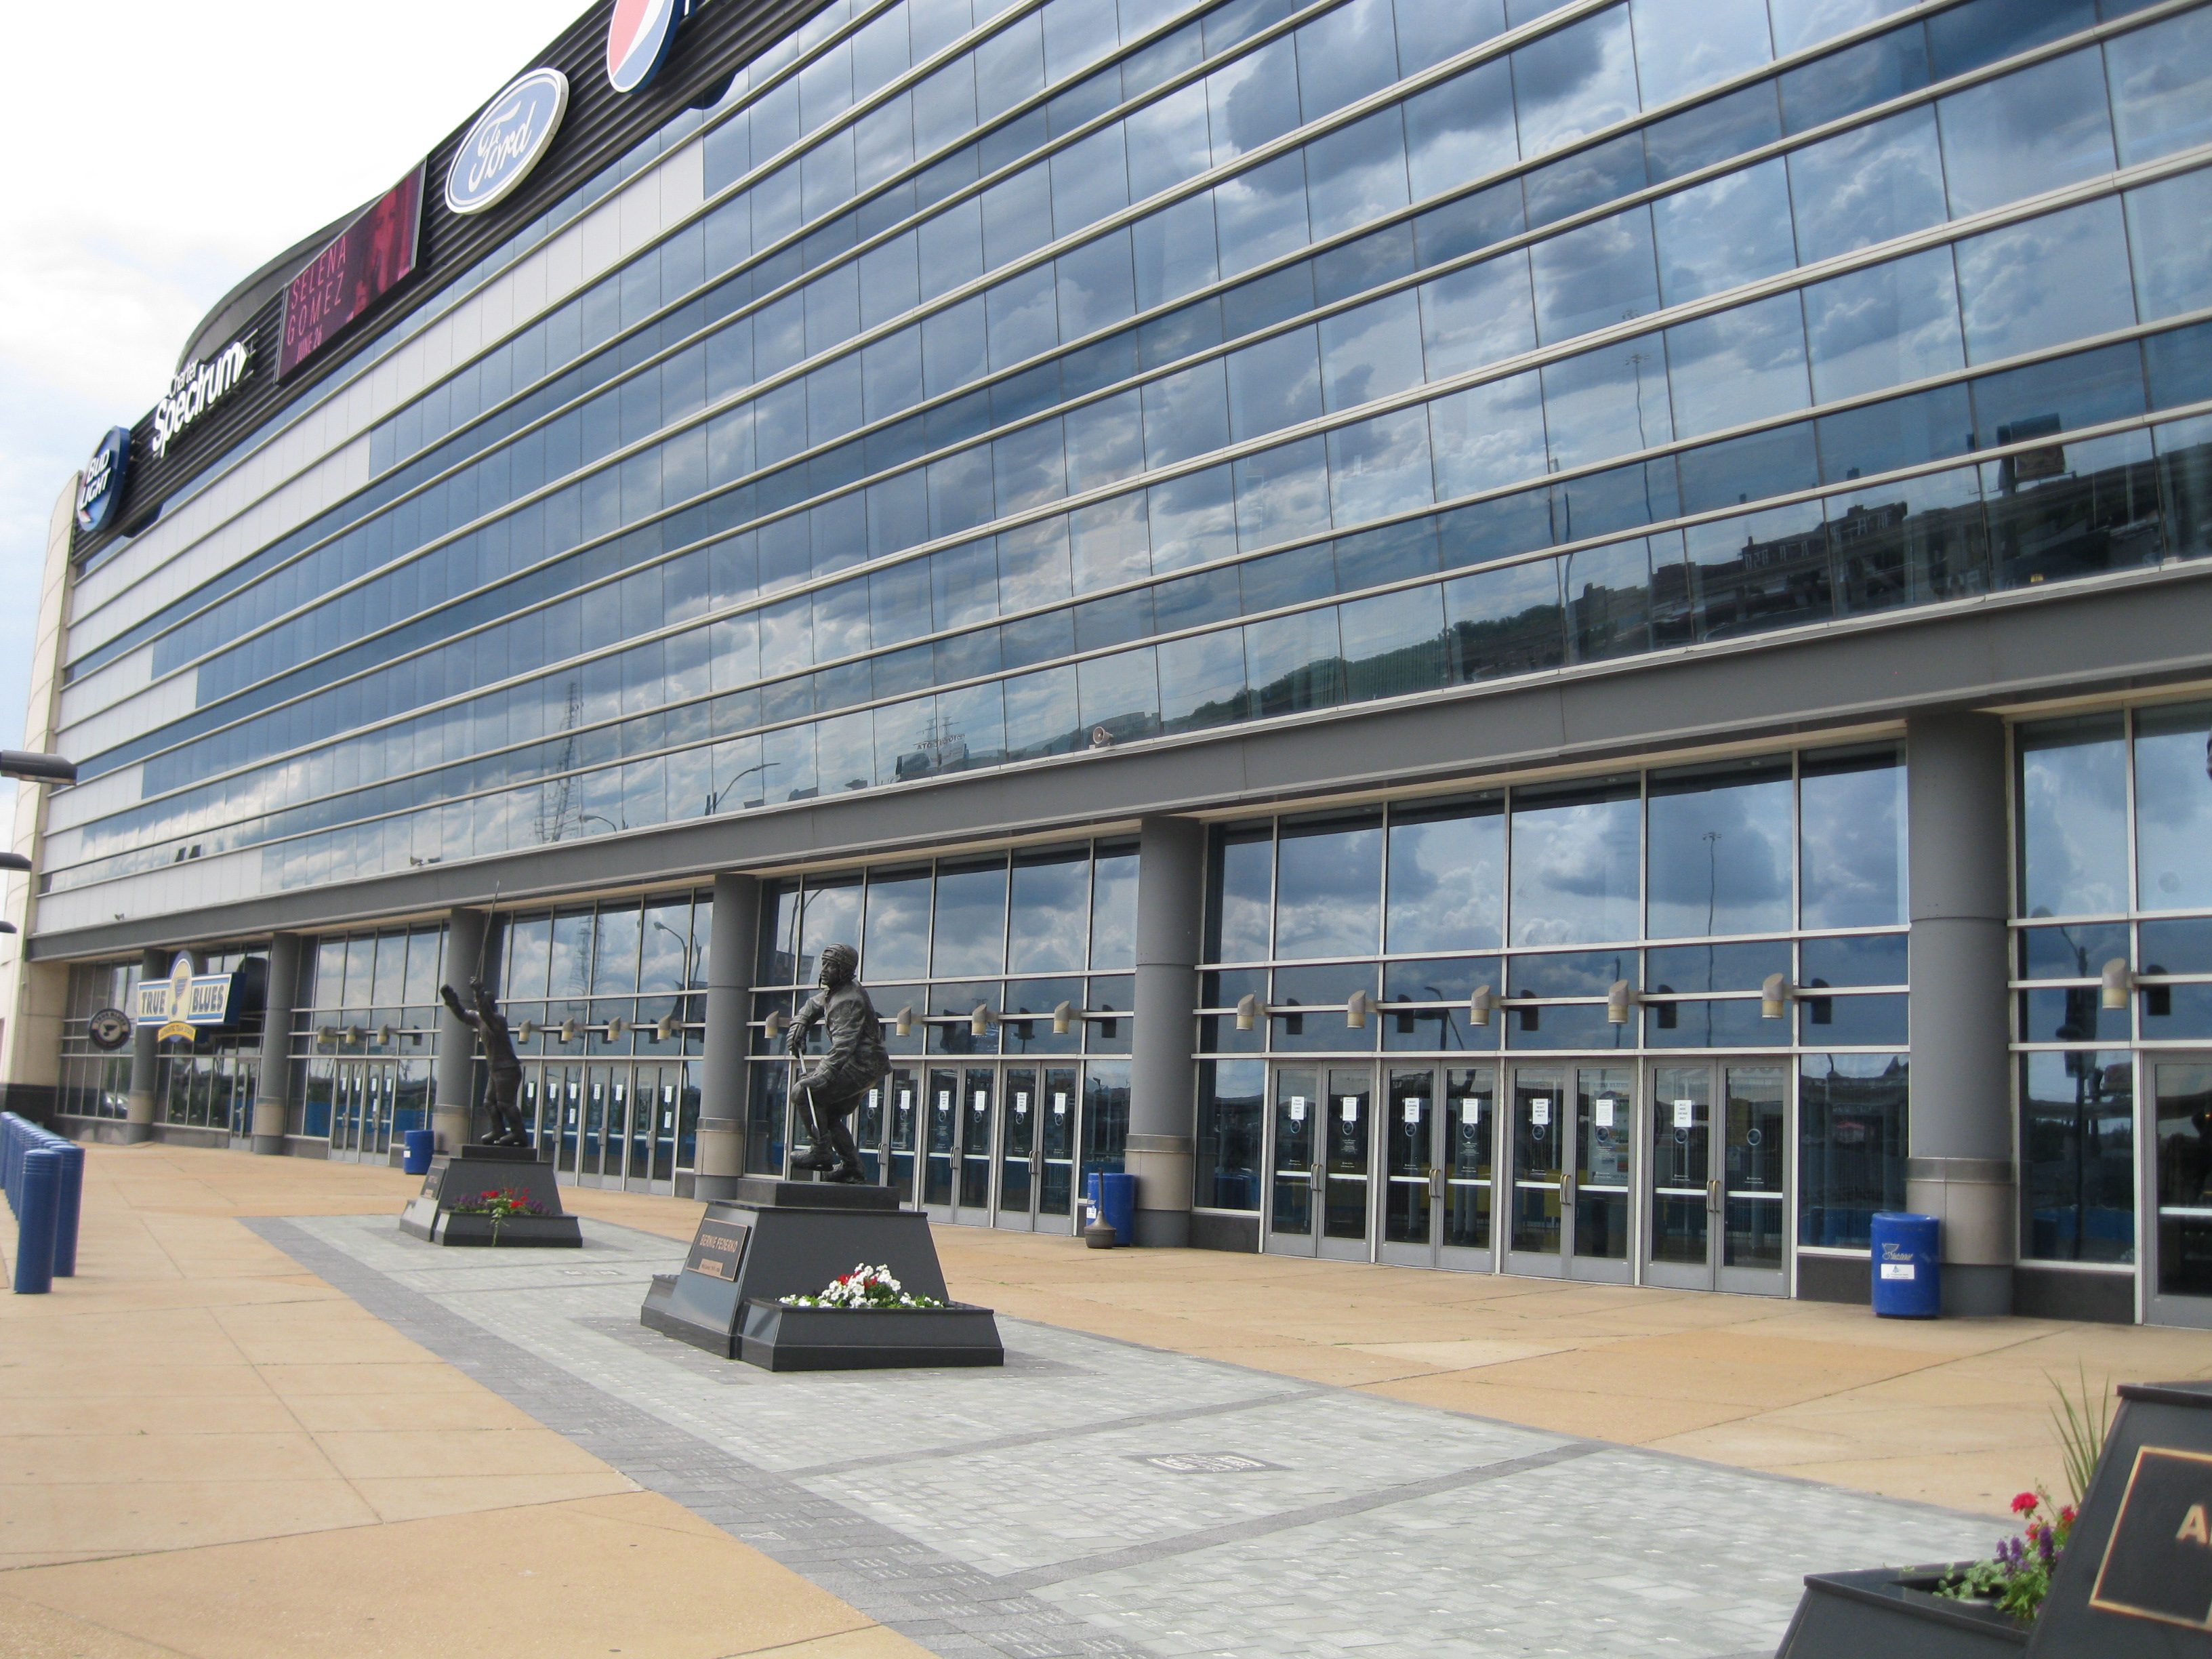 stadion Saint Louis Blues, Scottrade Center, Missouri